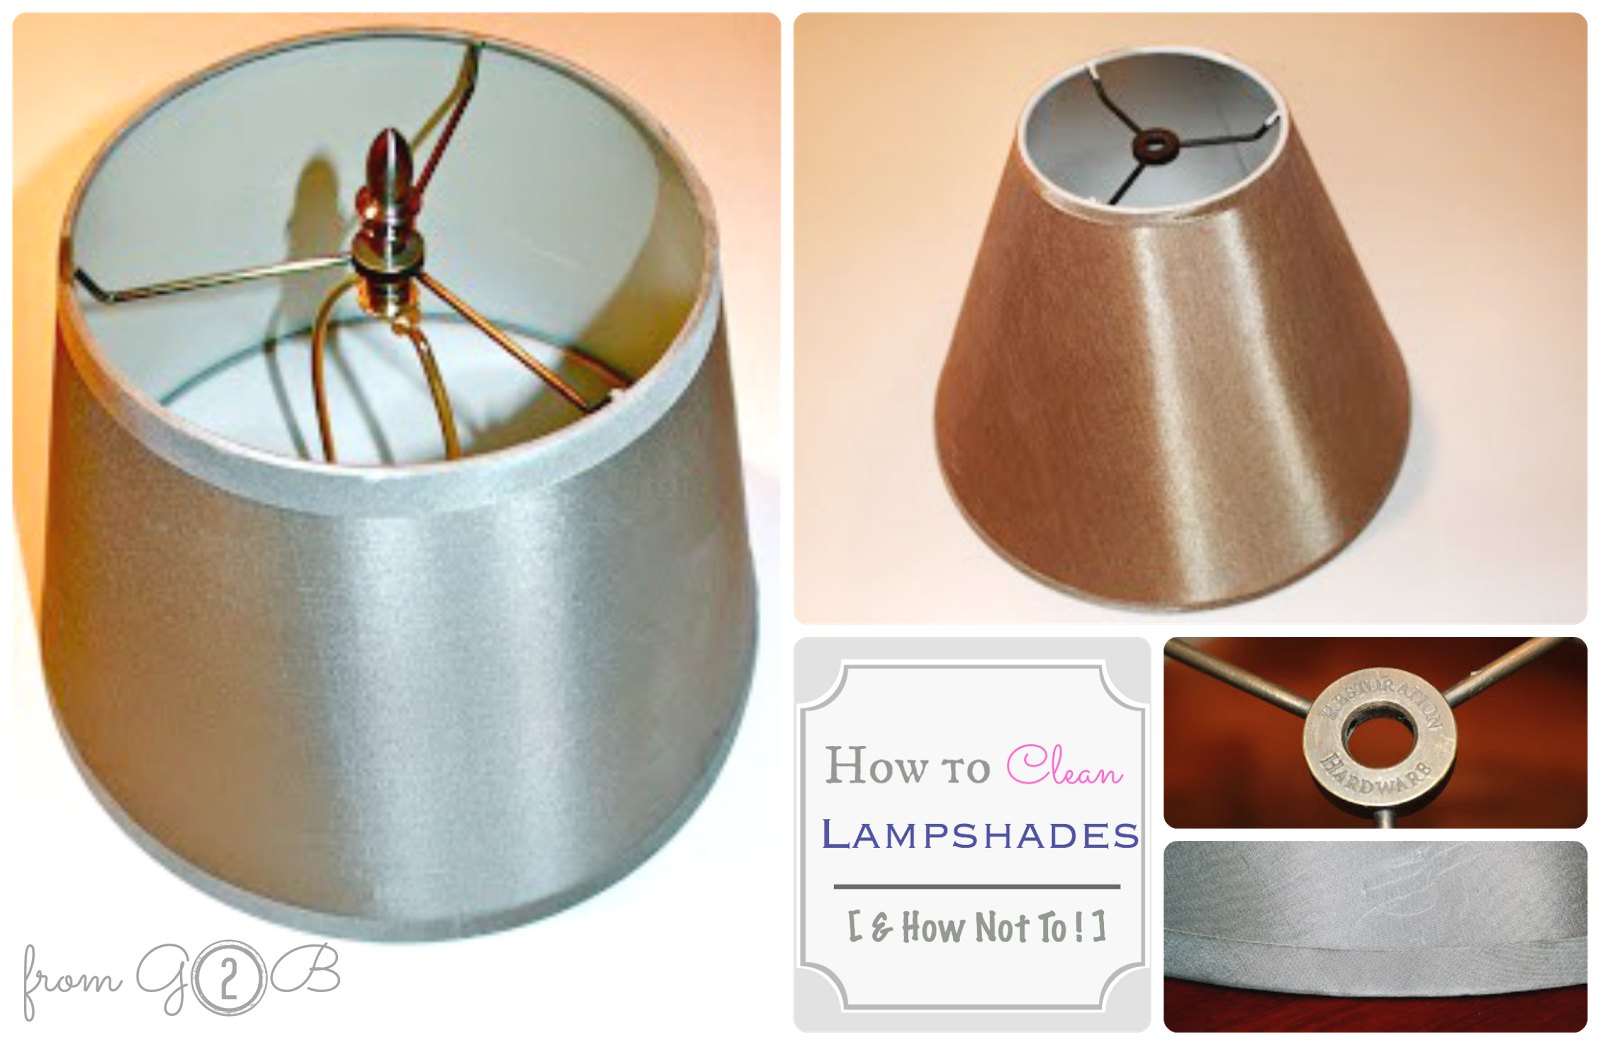 from Gardners 2 Bergers: Cleaning Thirft Store Lampshades